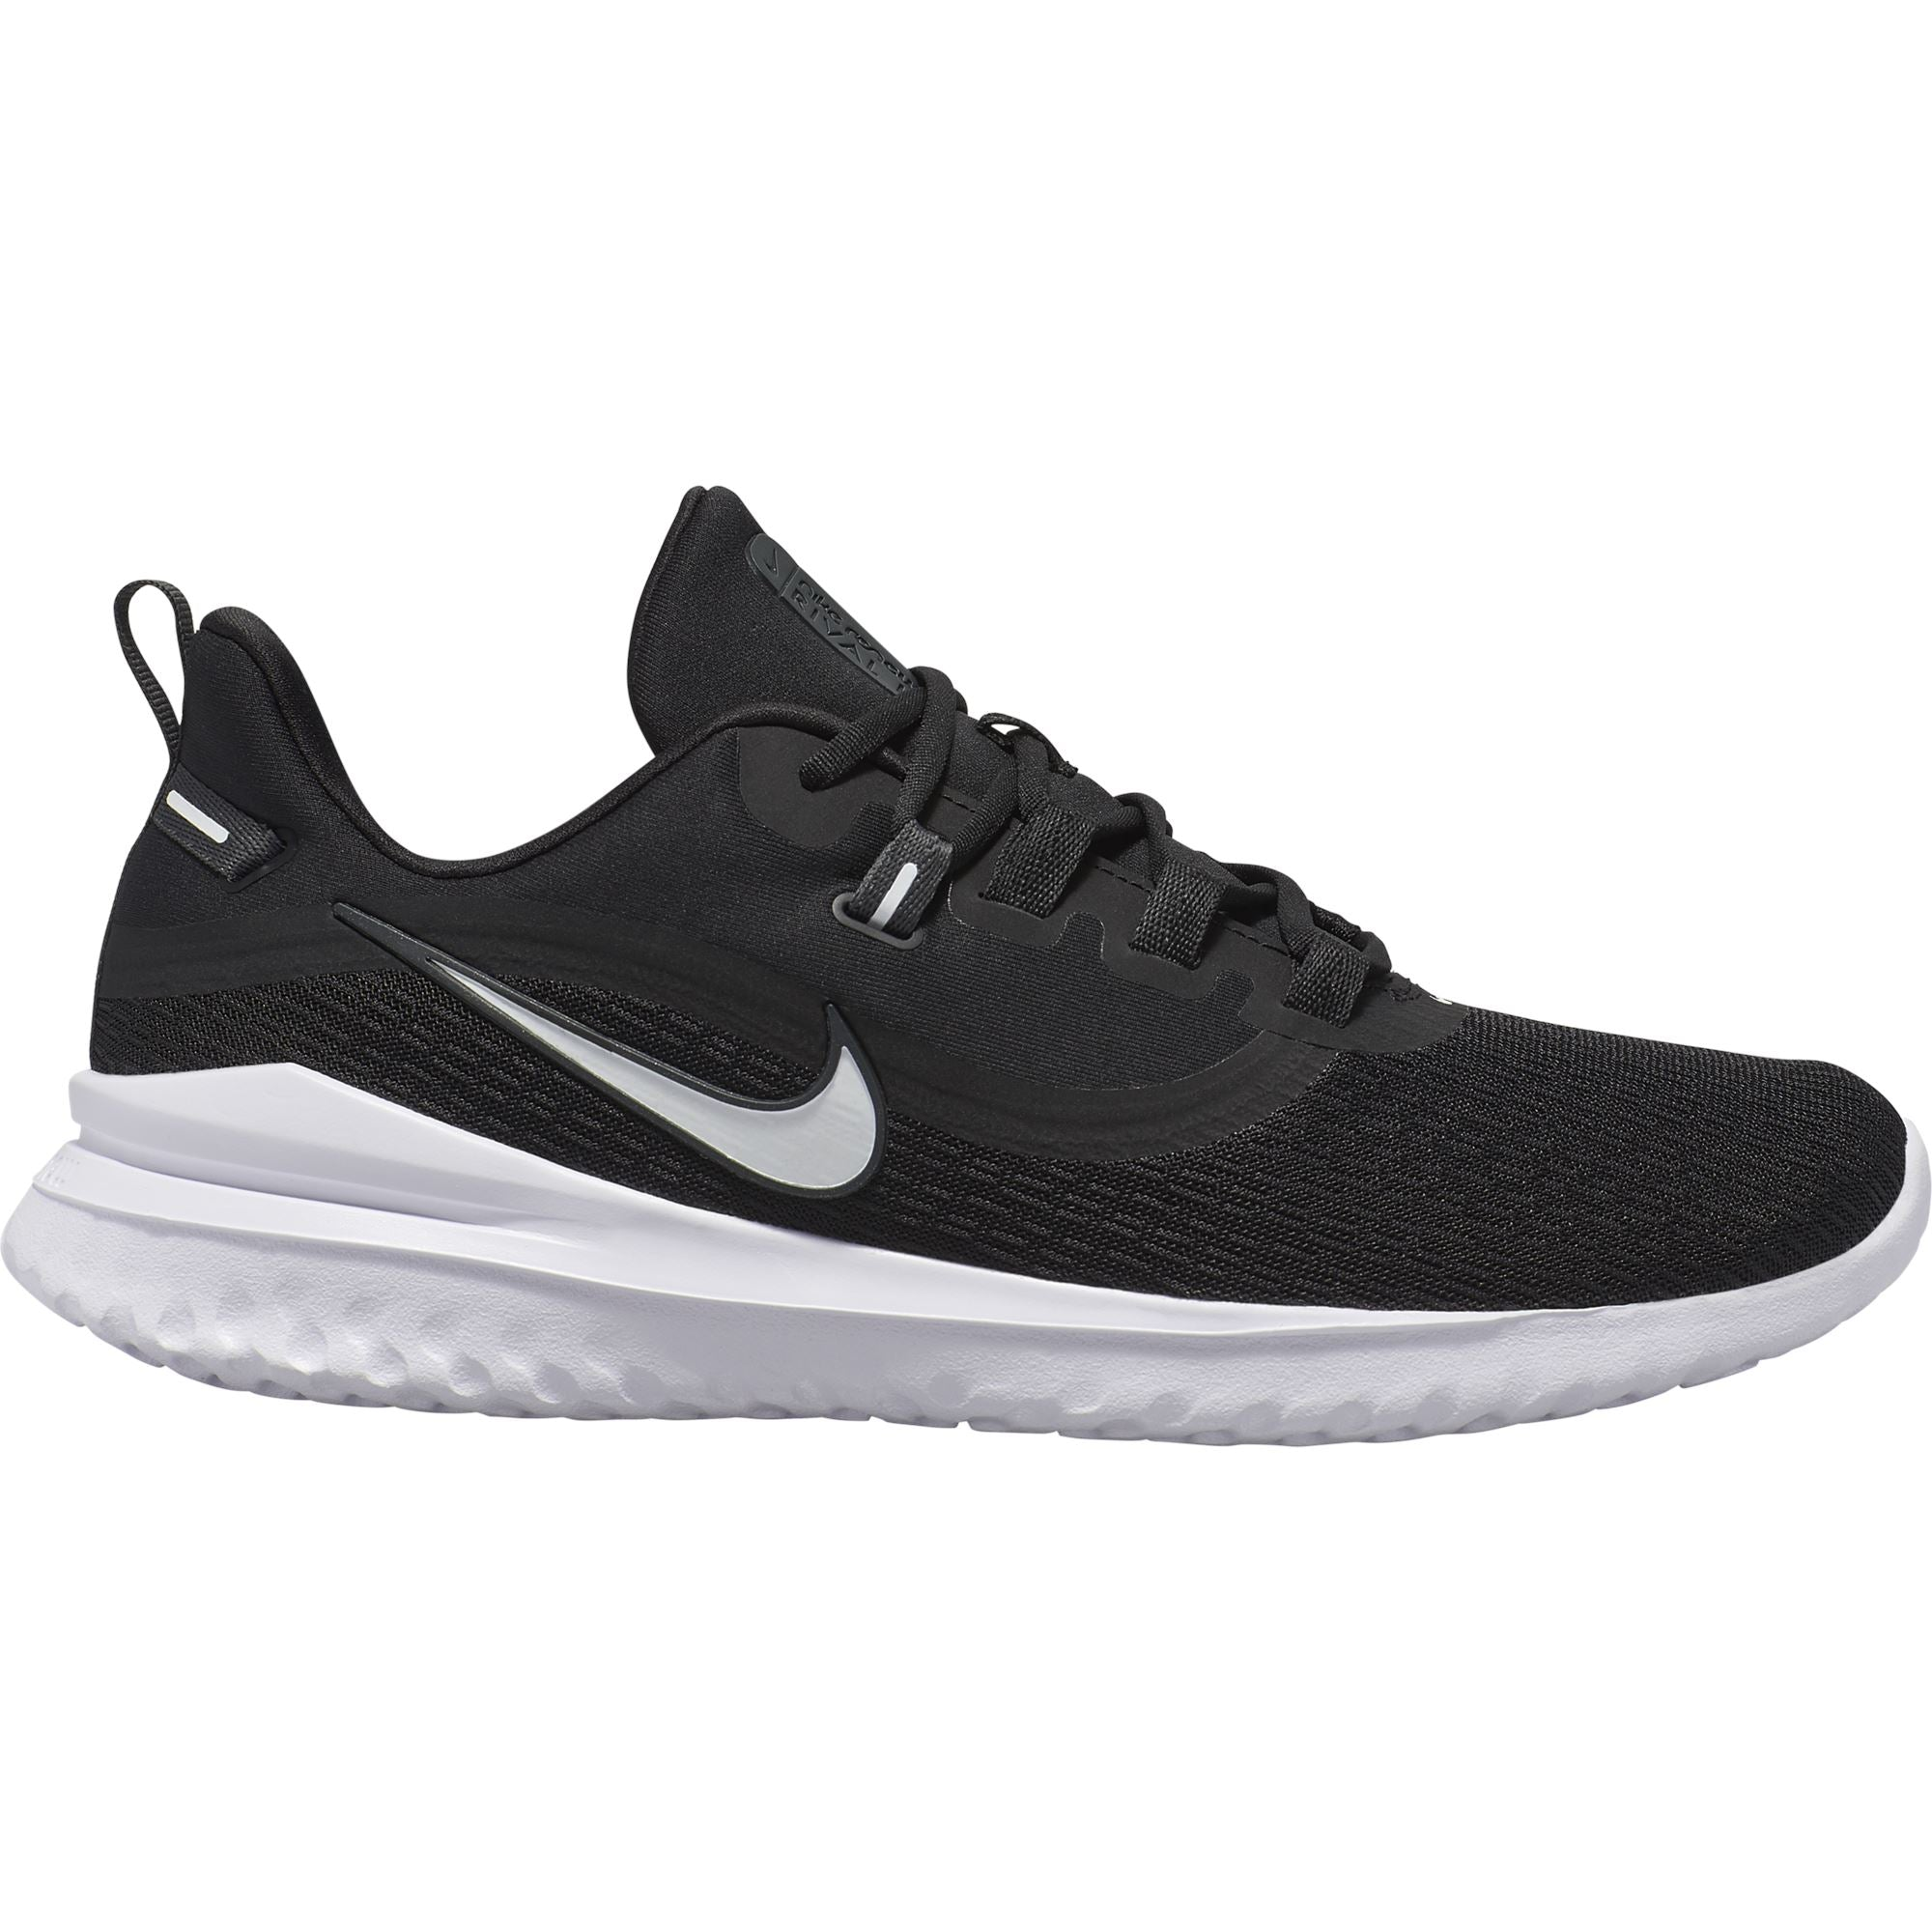 Nike Mens Renew Rival 2 - Black/White-Anthracite Q3NIKE Nike